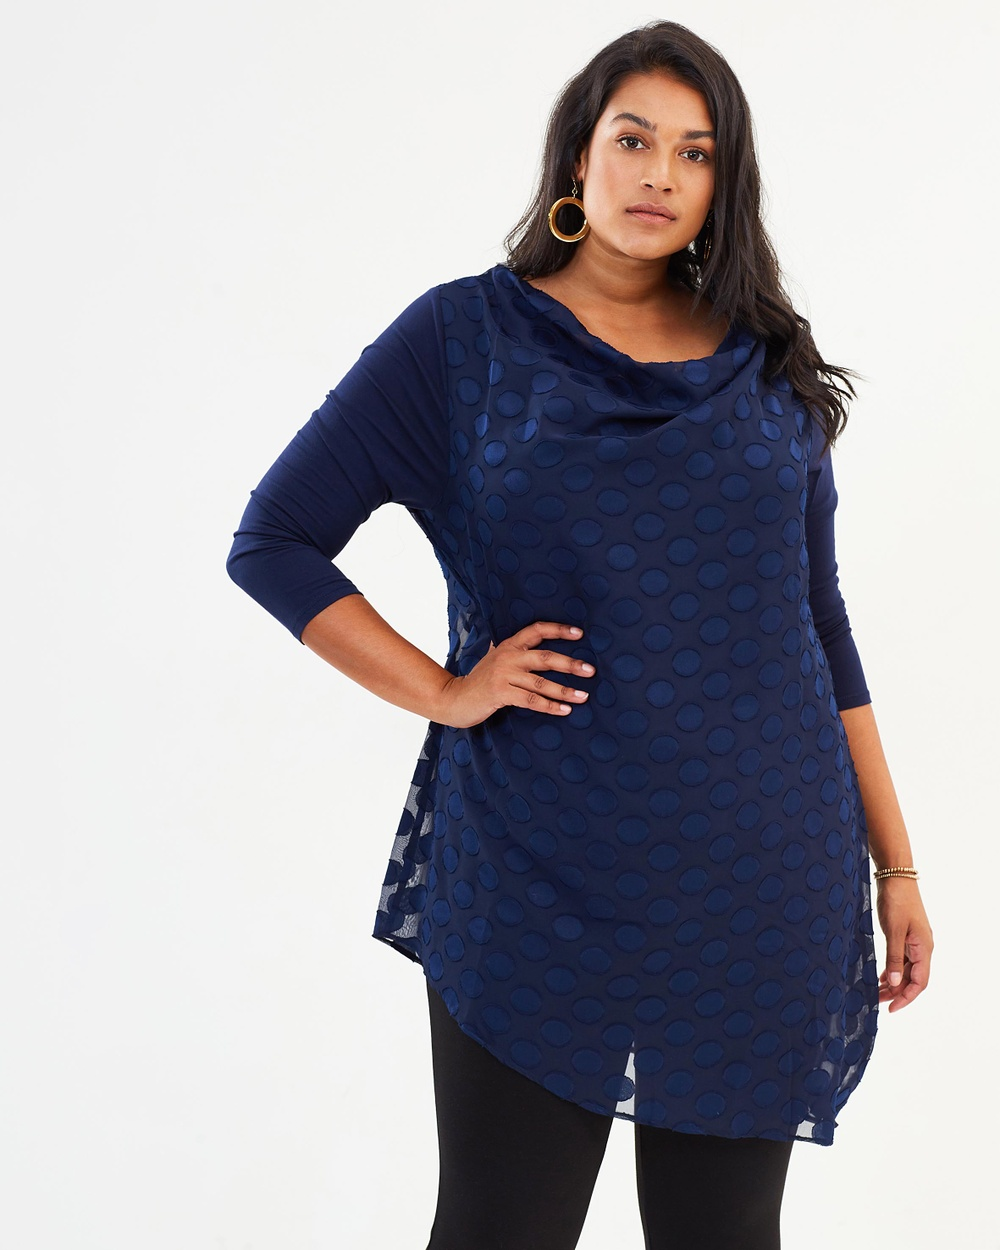 Studio 8 Nisha Spot Top Tops Navy Nisha Spot Top